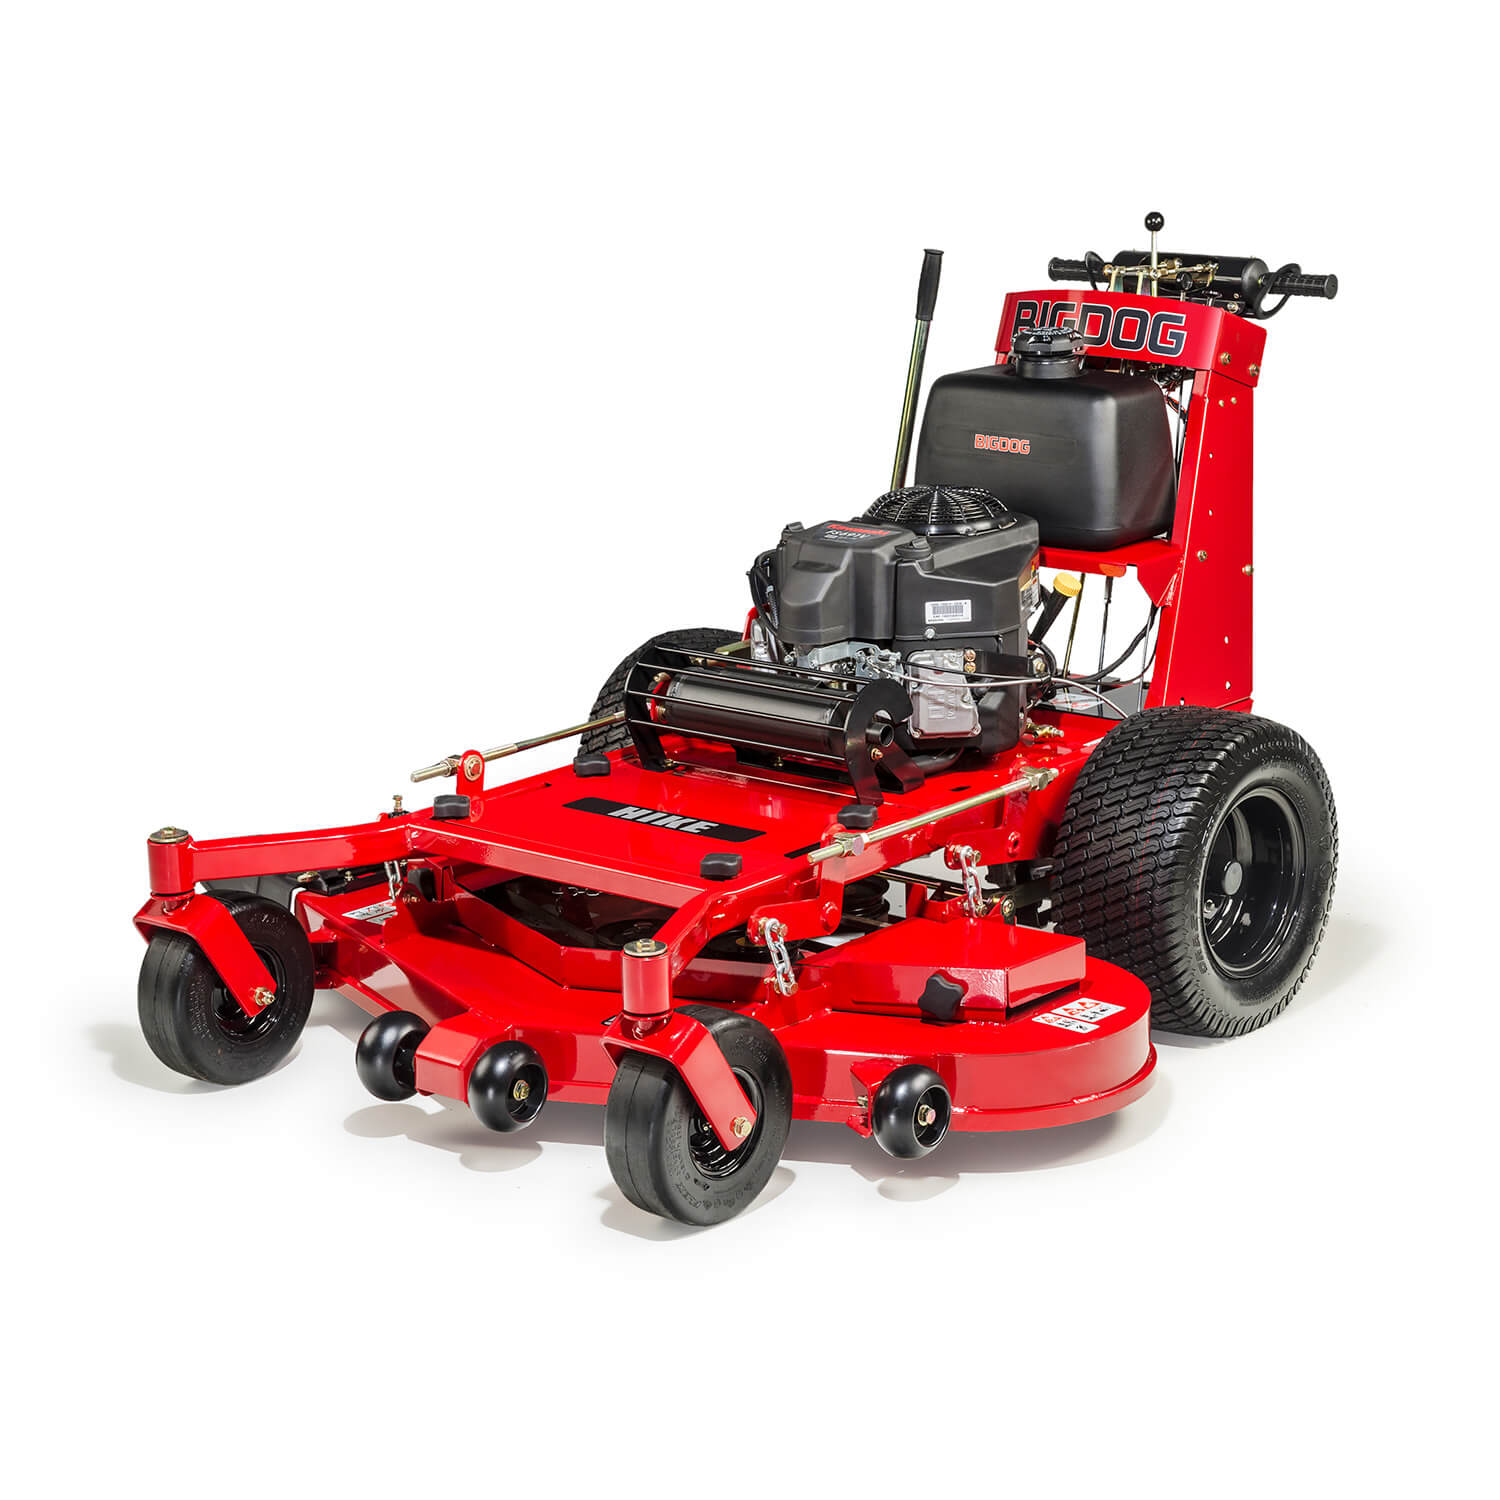 Image of the top of a red walk-behind mower